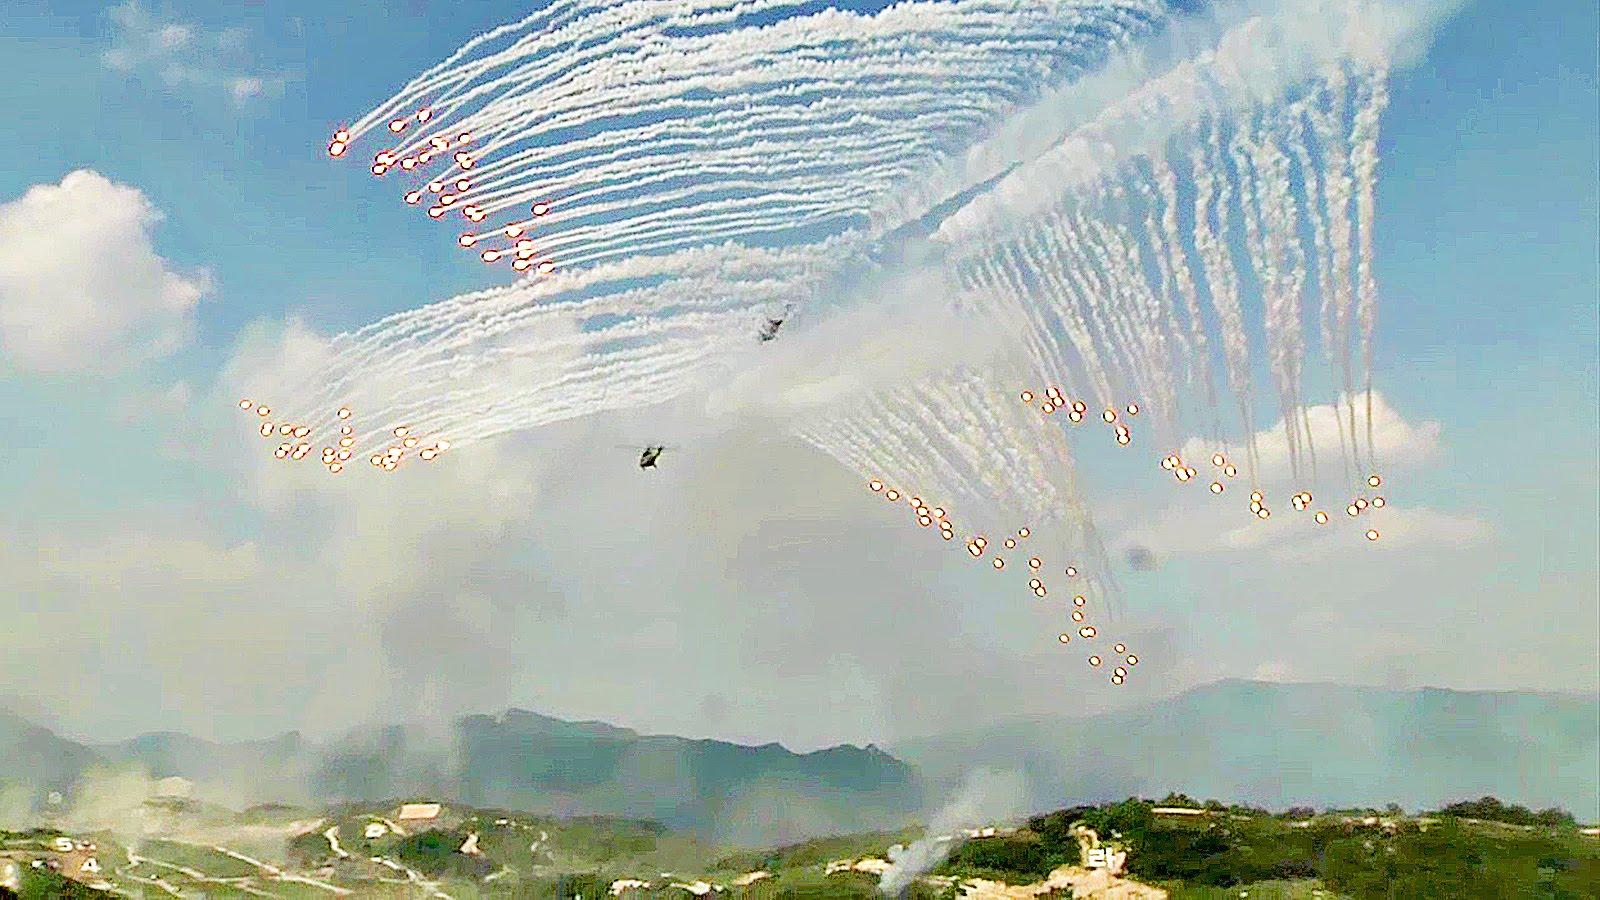 South Korean Military In Action! Largest-ever, Massive Live Fire Exercise